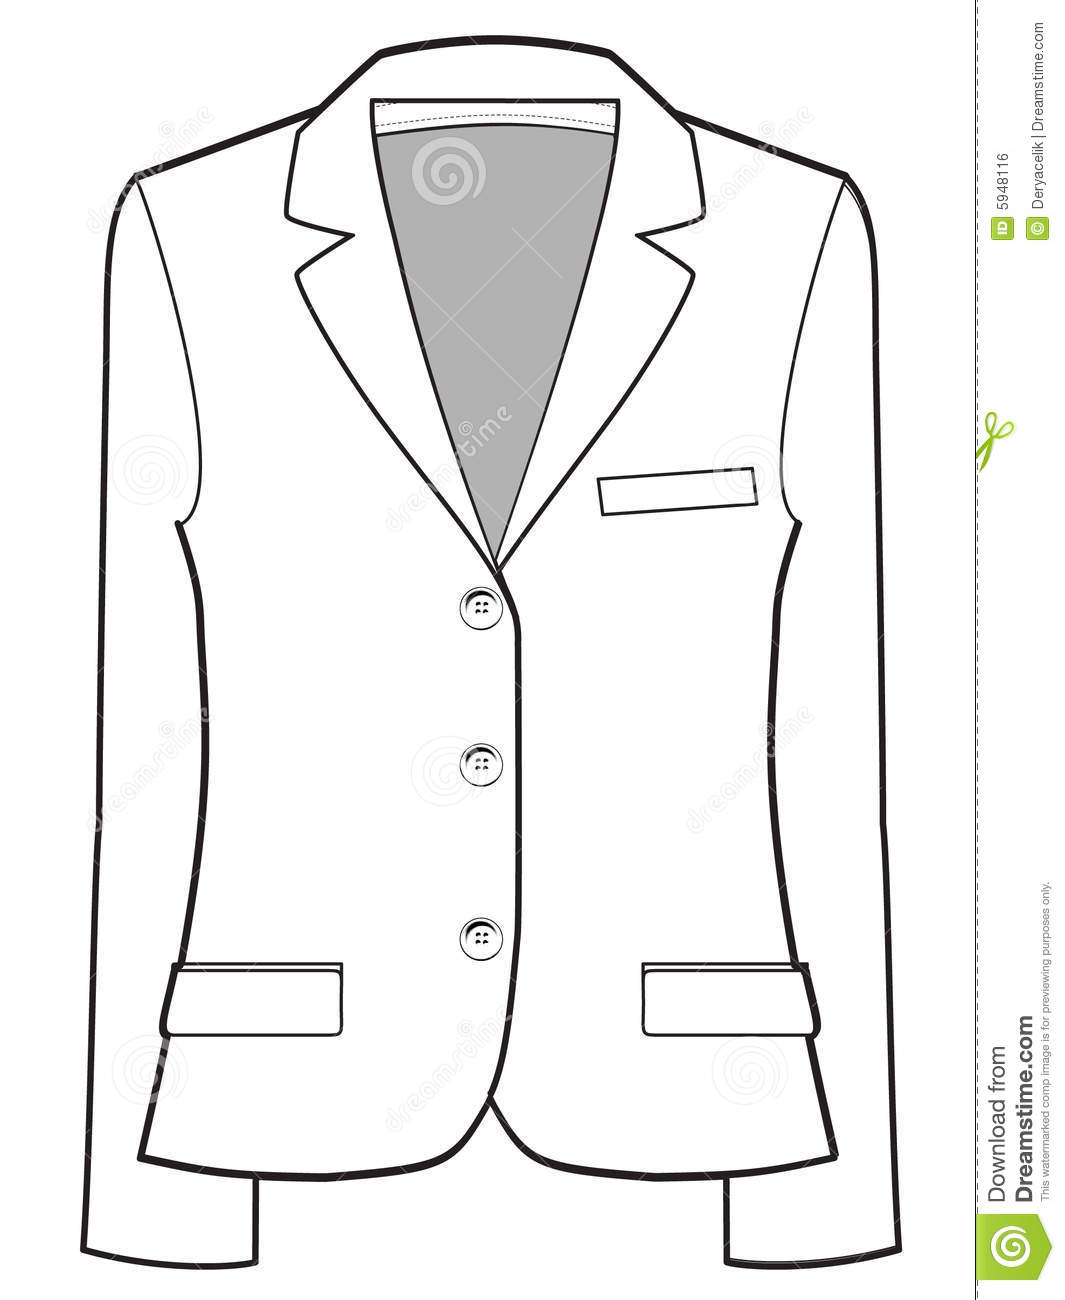 Jacket Vector Illustration Royalty Free Stock Image